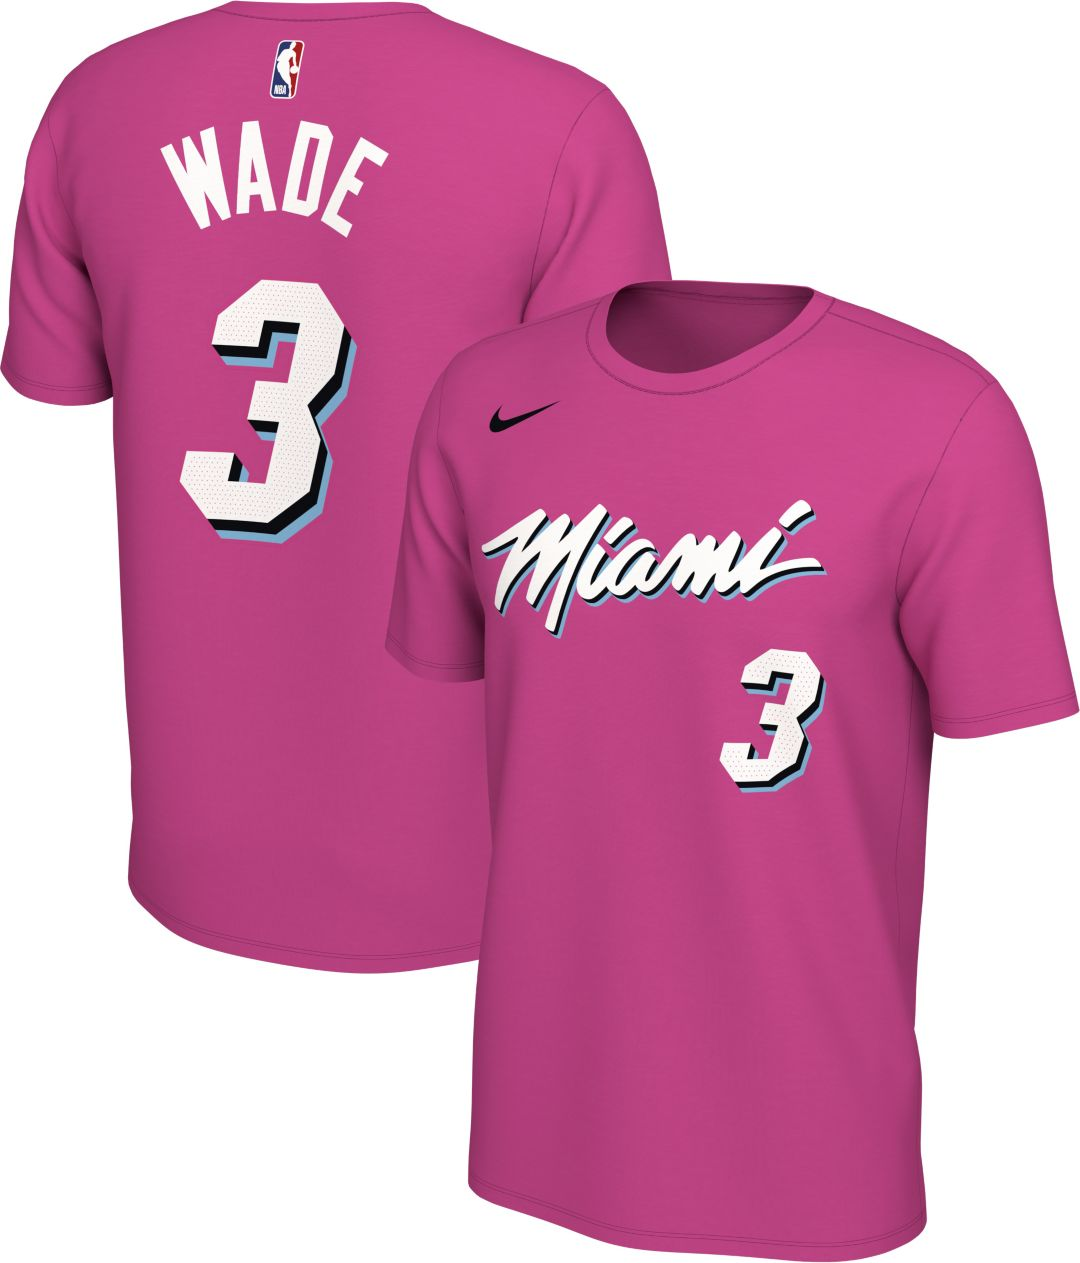 finest selection 0faac a47b3 Nike Men's Miami Heat Dwyane Wade Dri-FIT Earned Edition T-Shirt